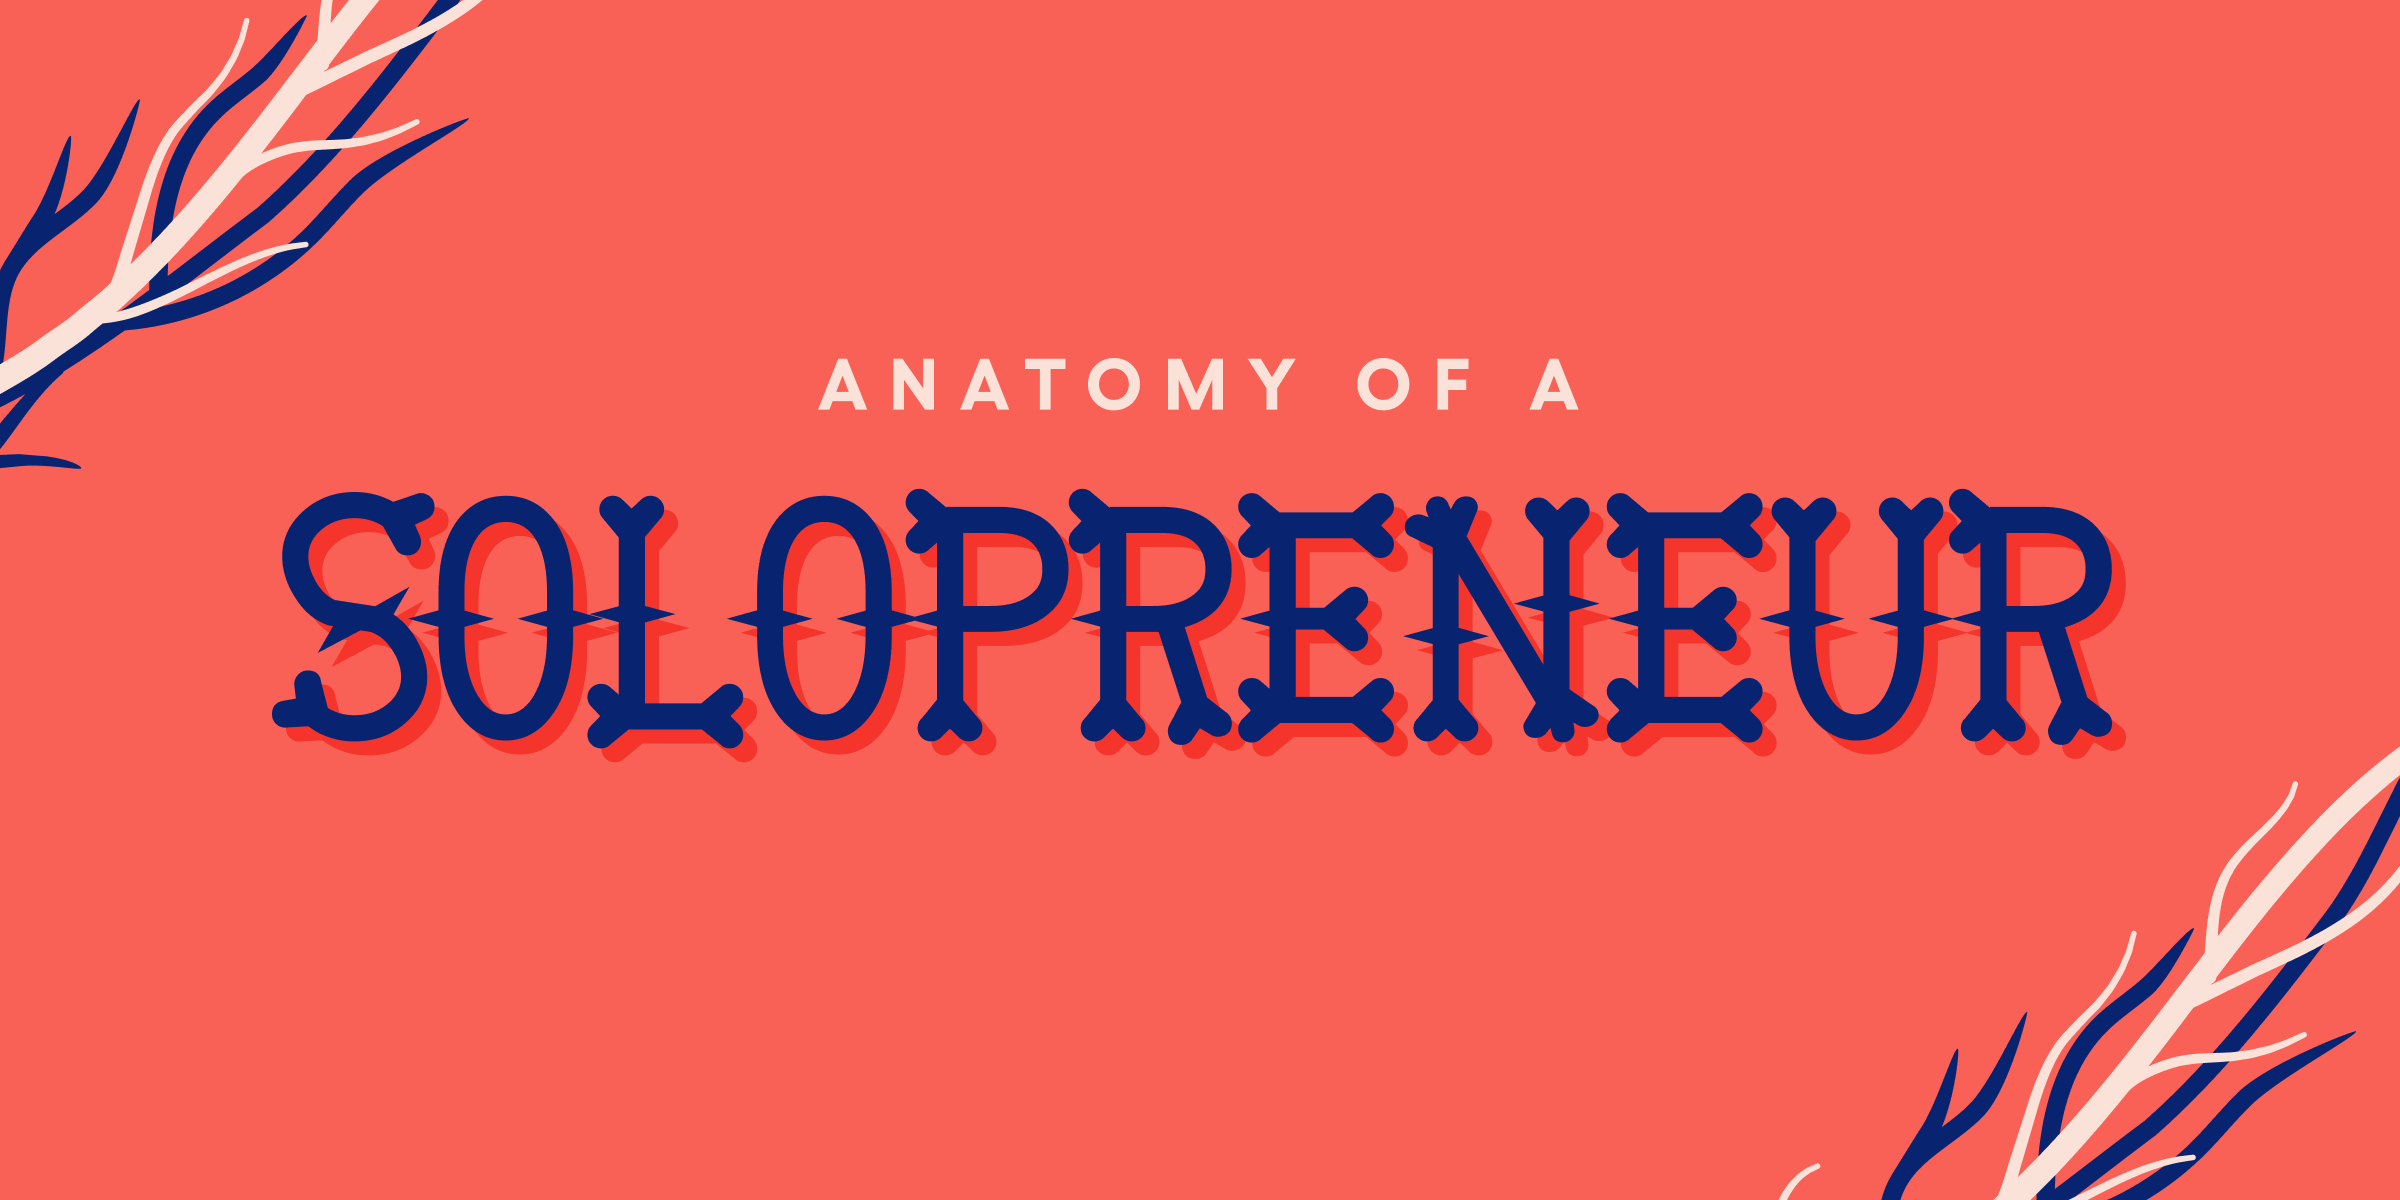 Anatomy of a solopreneur [infographic]